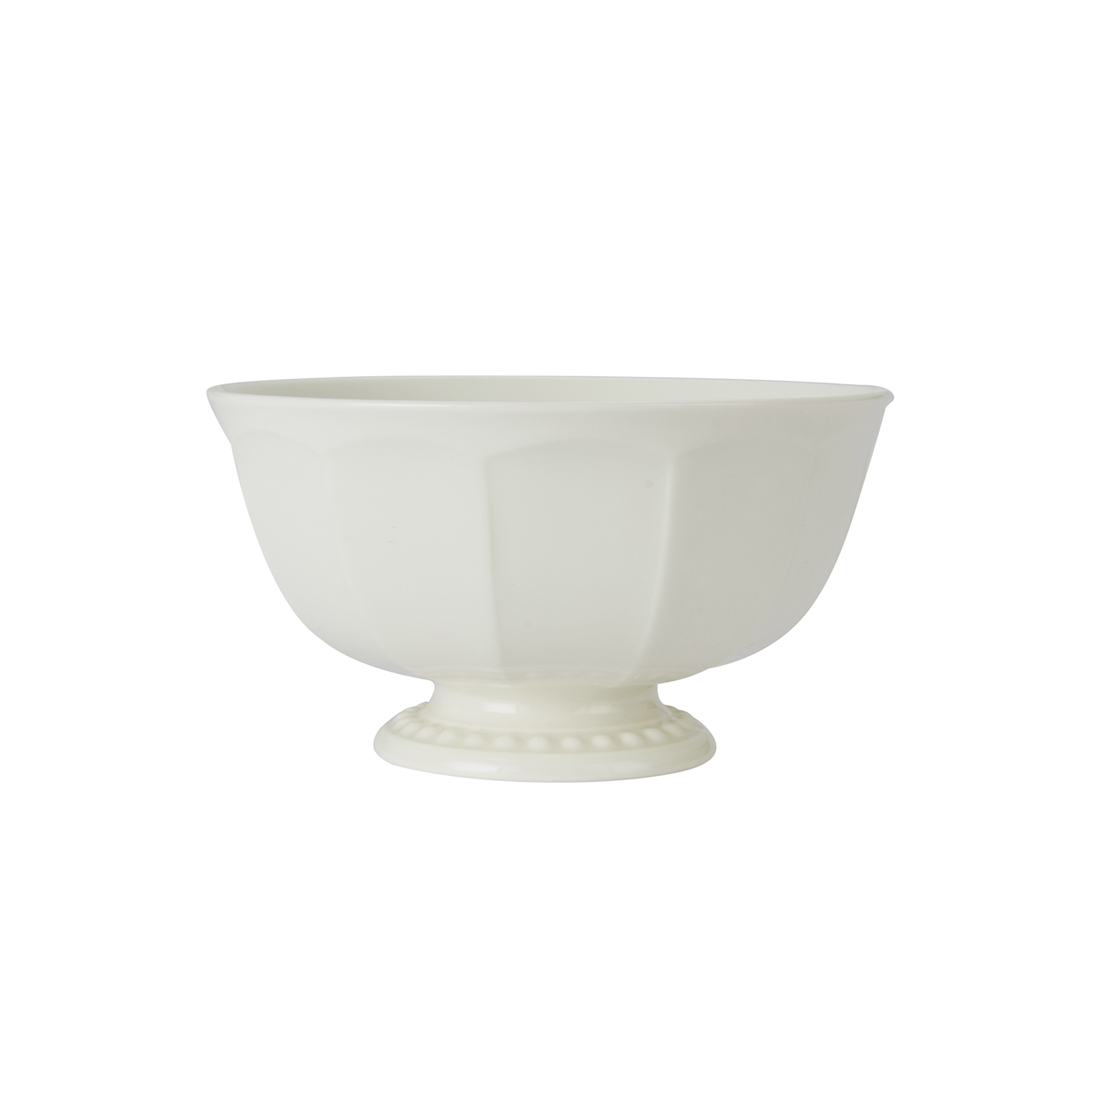 Florence Veg Bowl 12 Cm Ceramic Serving Bowls in White With Gold Line Colour by Living Essence